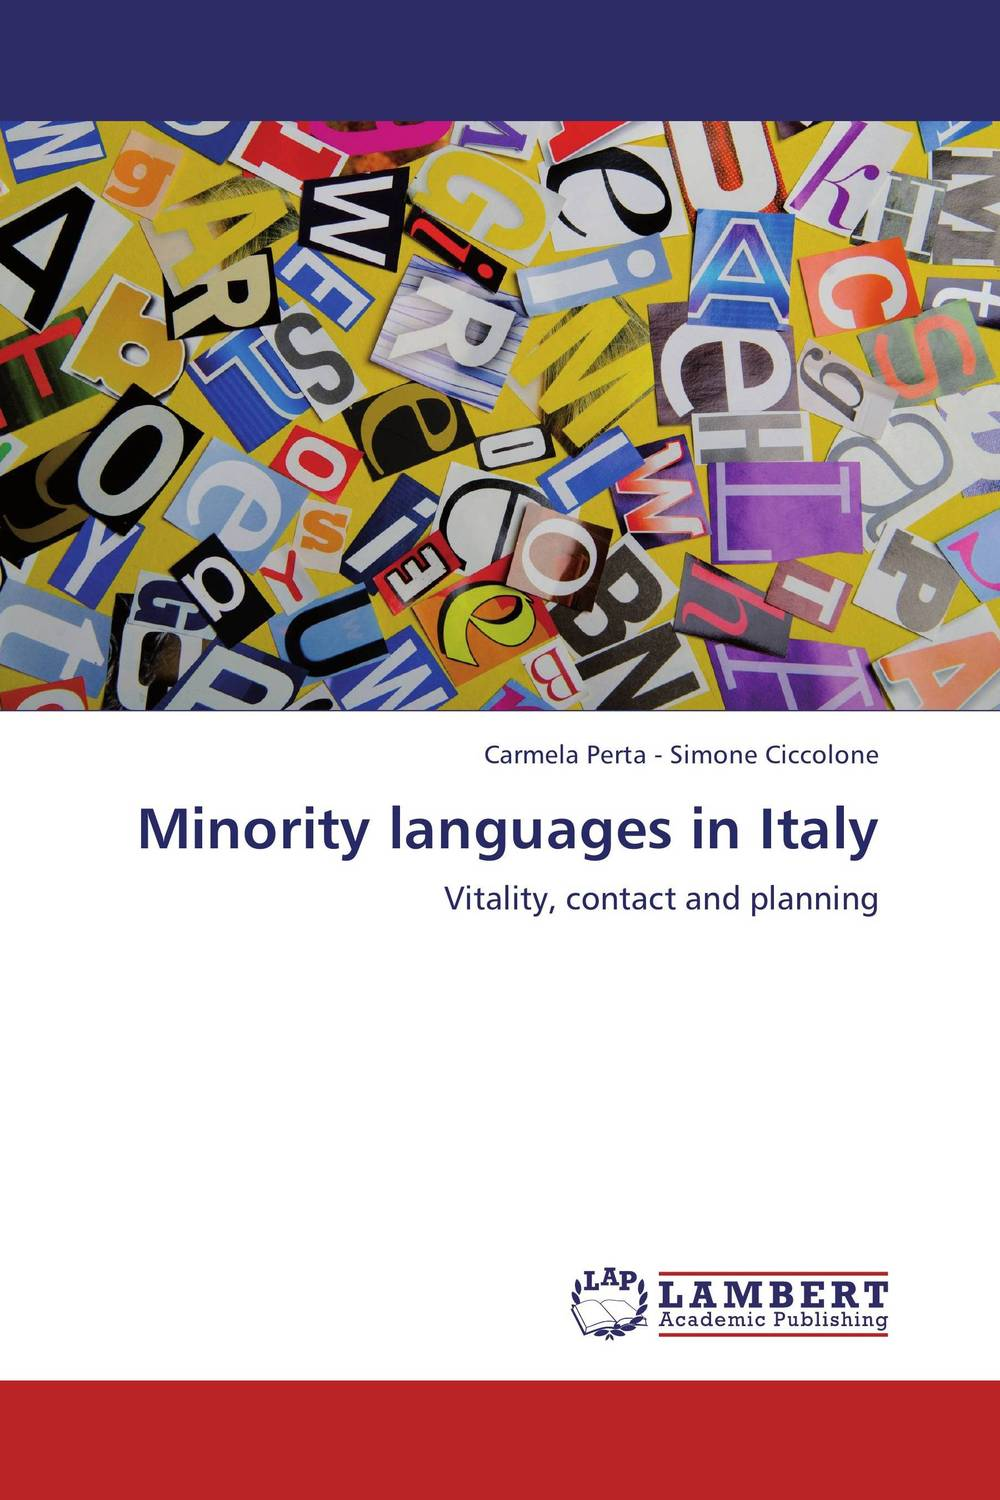 Minority languages in Italy